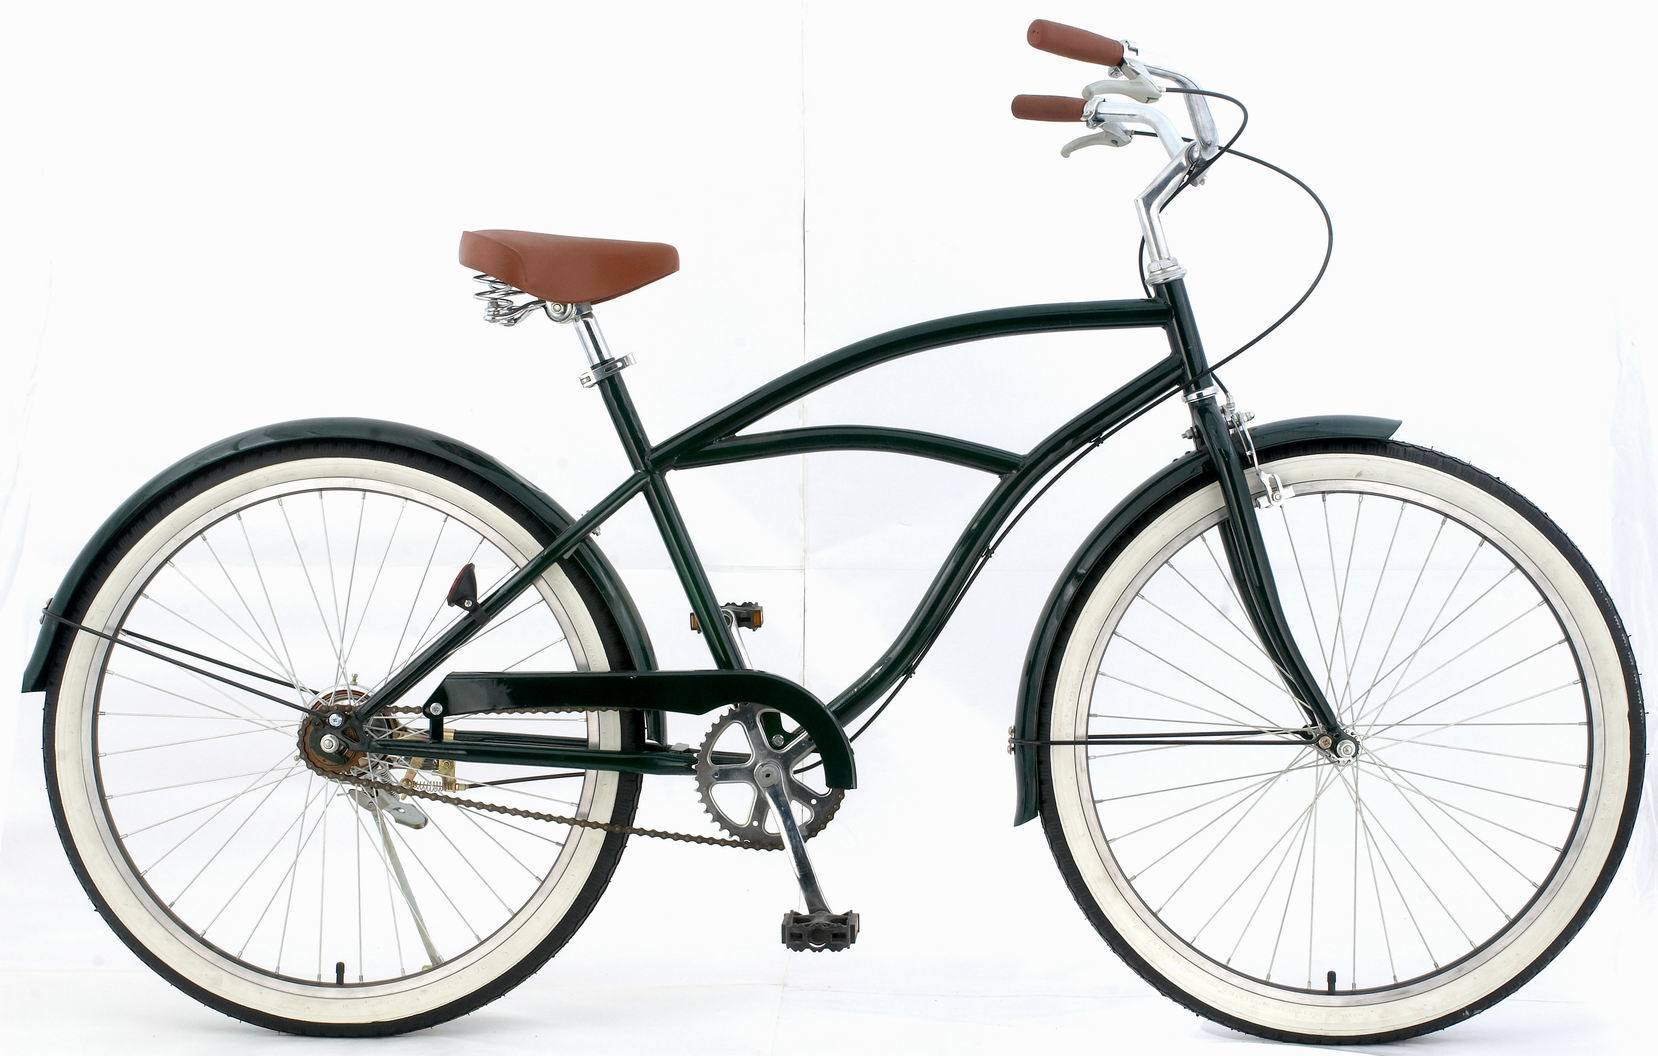 Details About Beach Cruiser Bike  Modifikasi Sepeda Motor